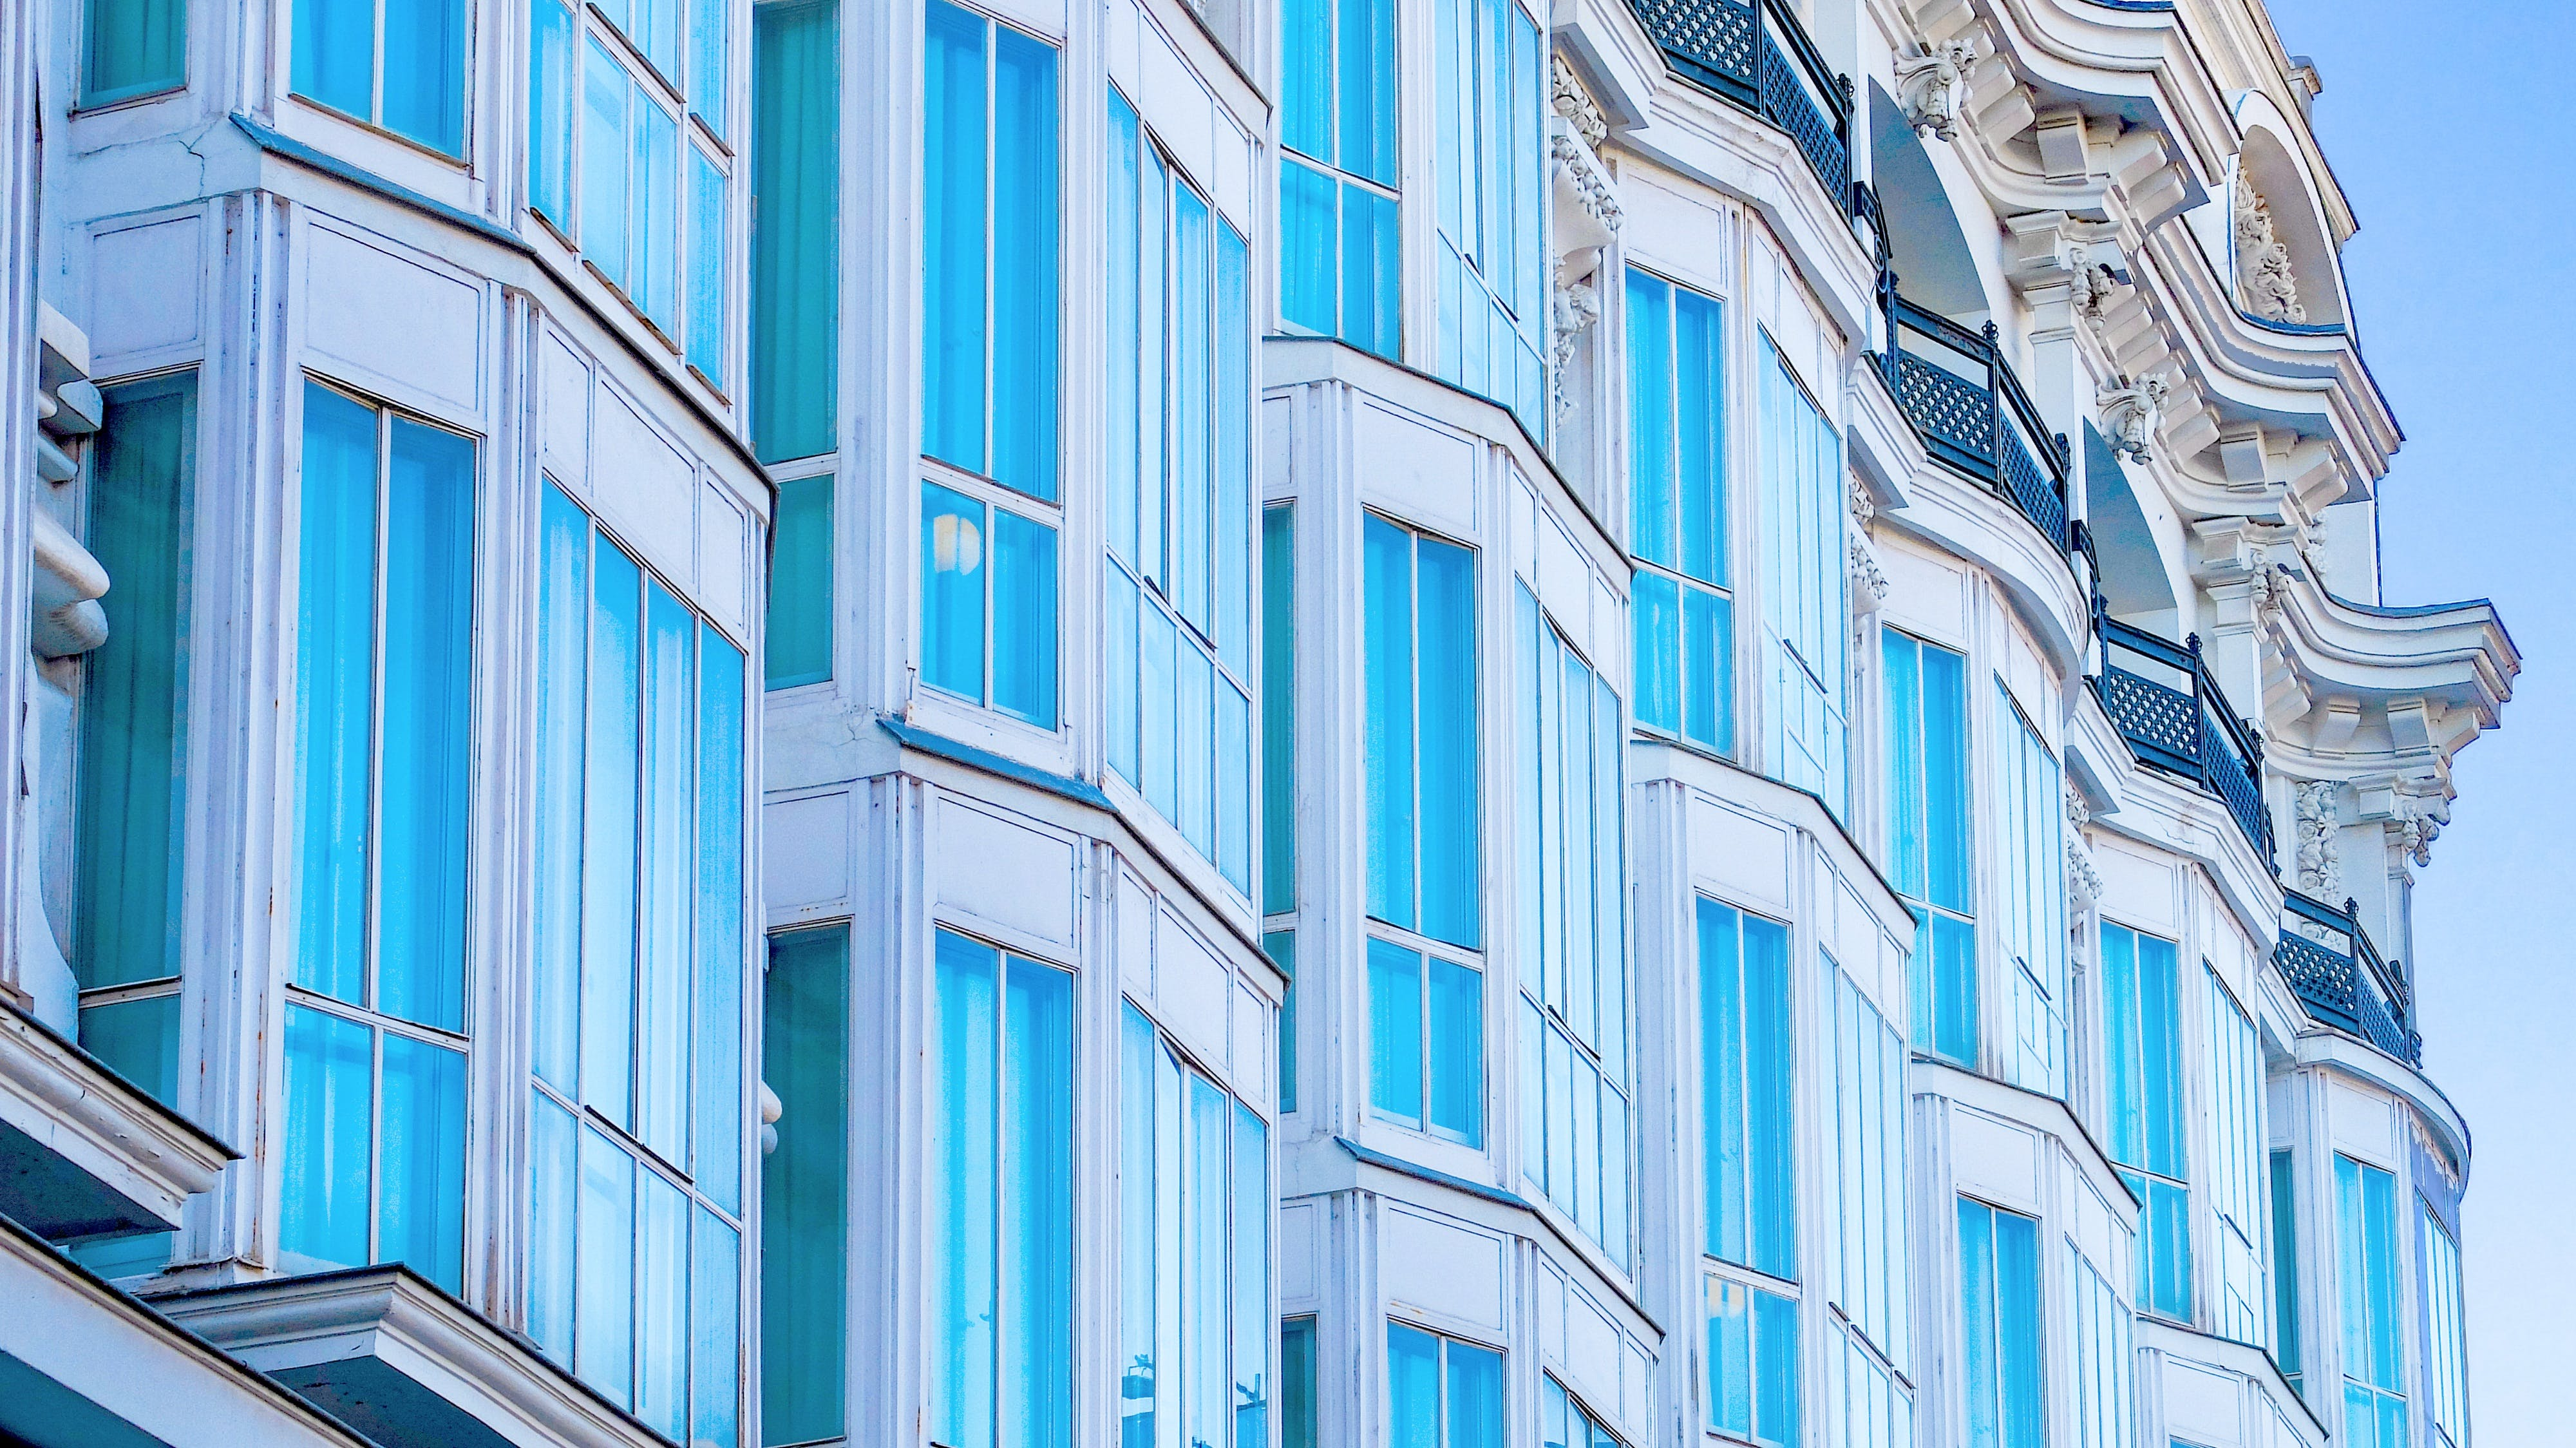 Building With Blue Curtains